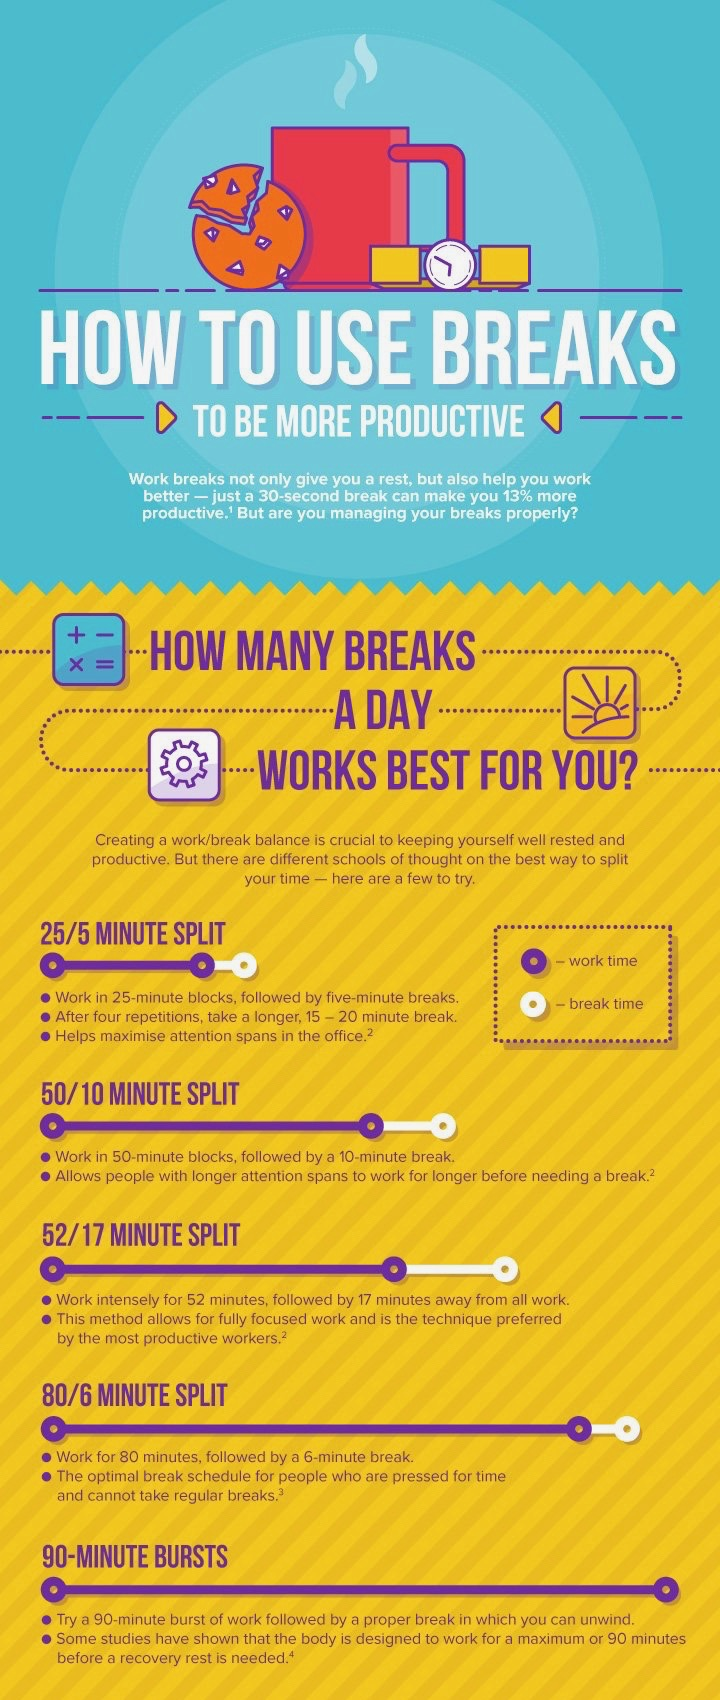 use breaks to be more productive